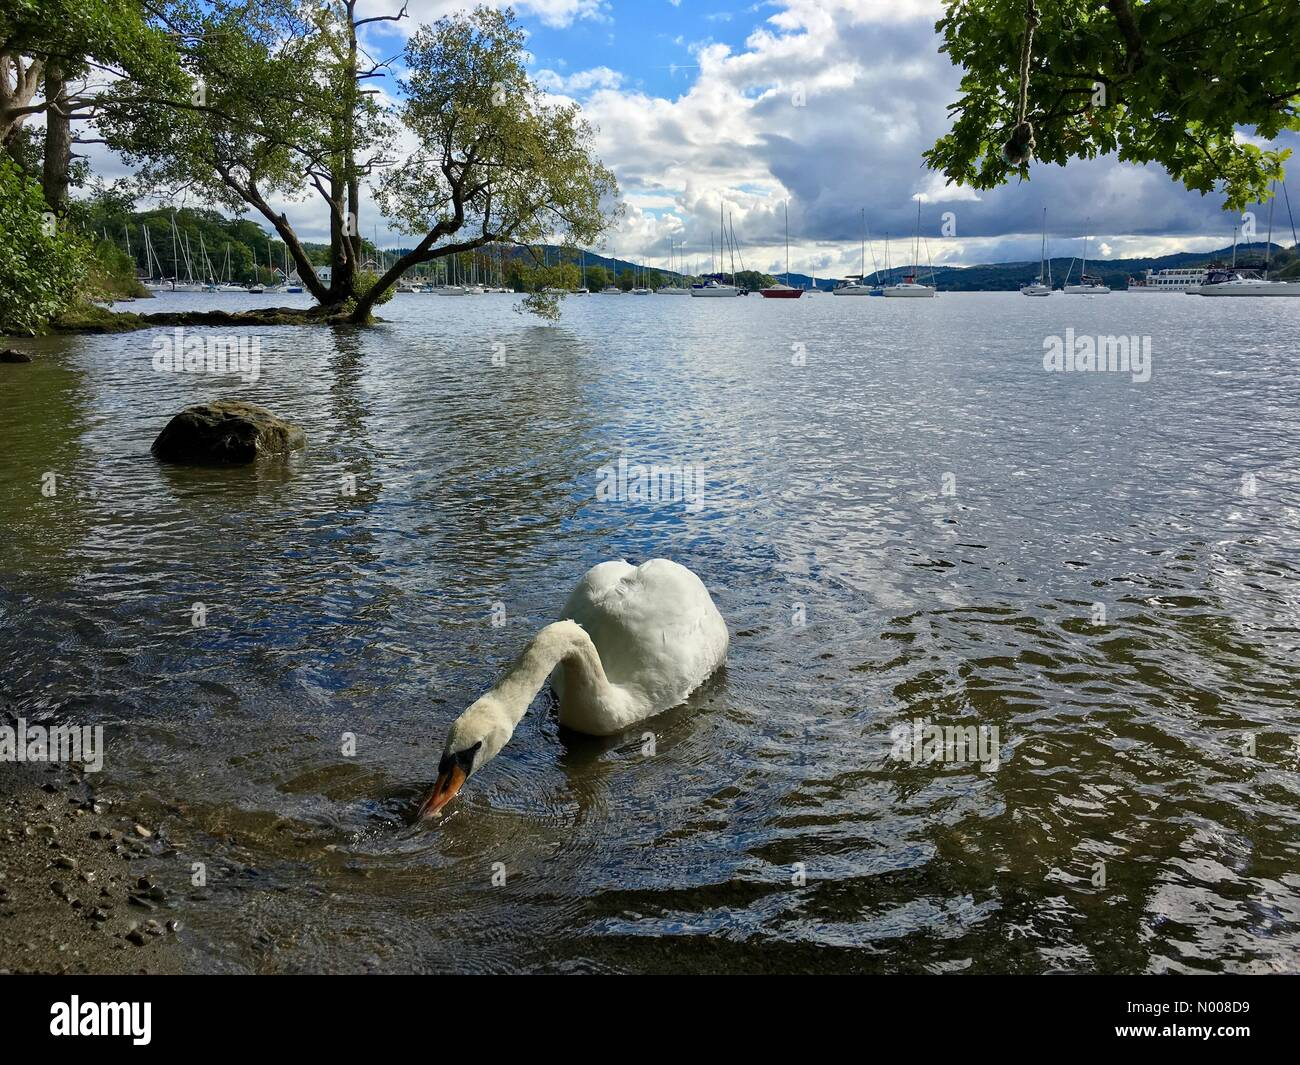 UK Weather: Sunny afternoon at Bowness on Lake Windermere. - Stock Image